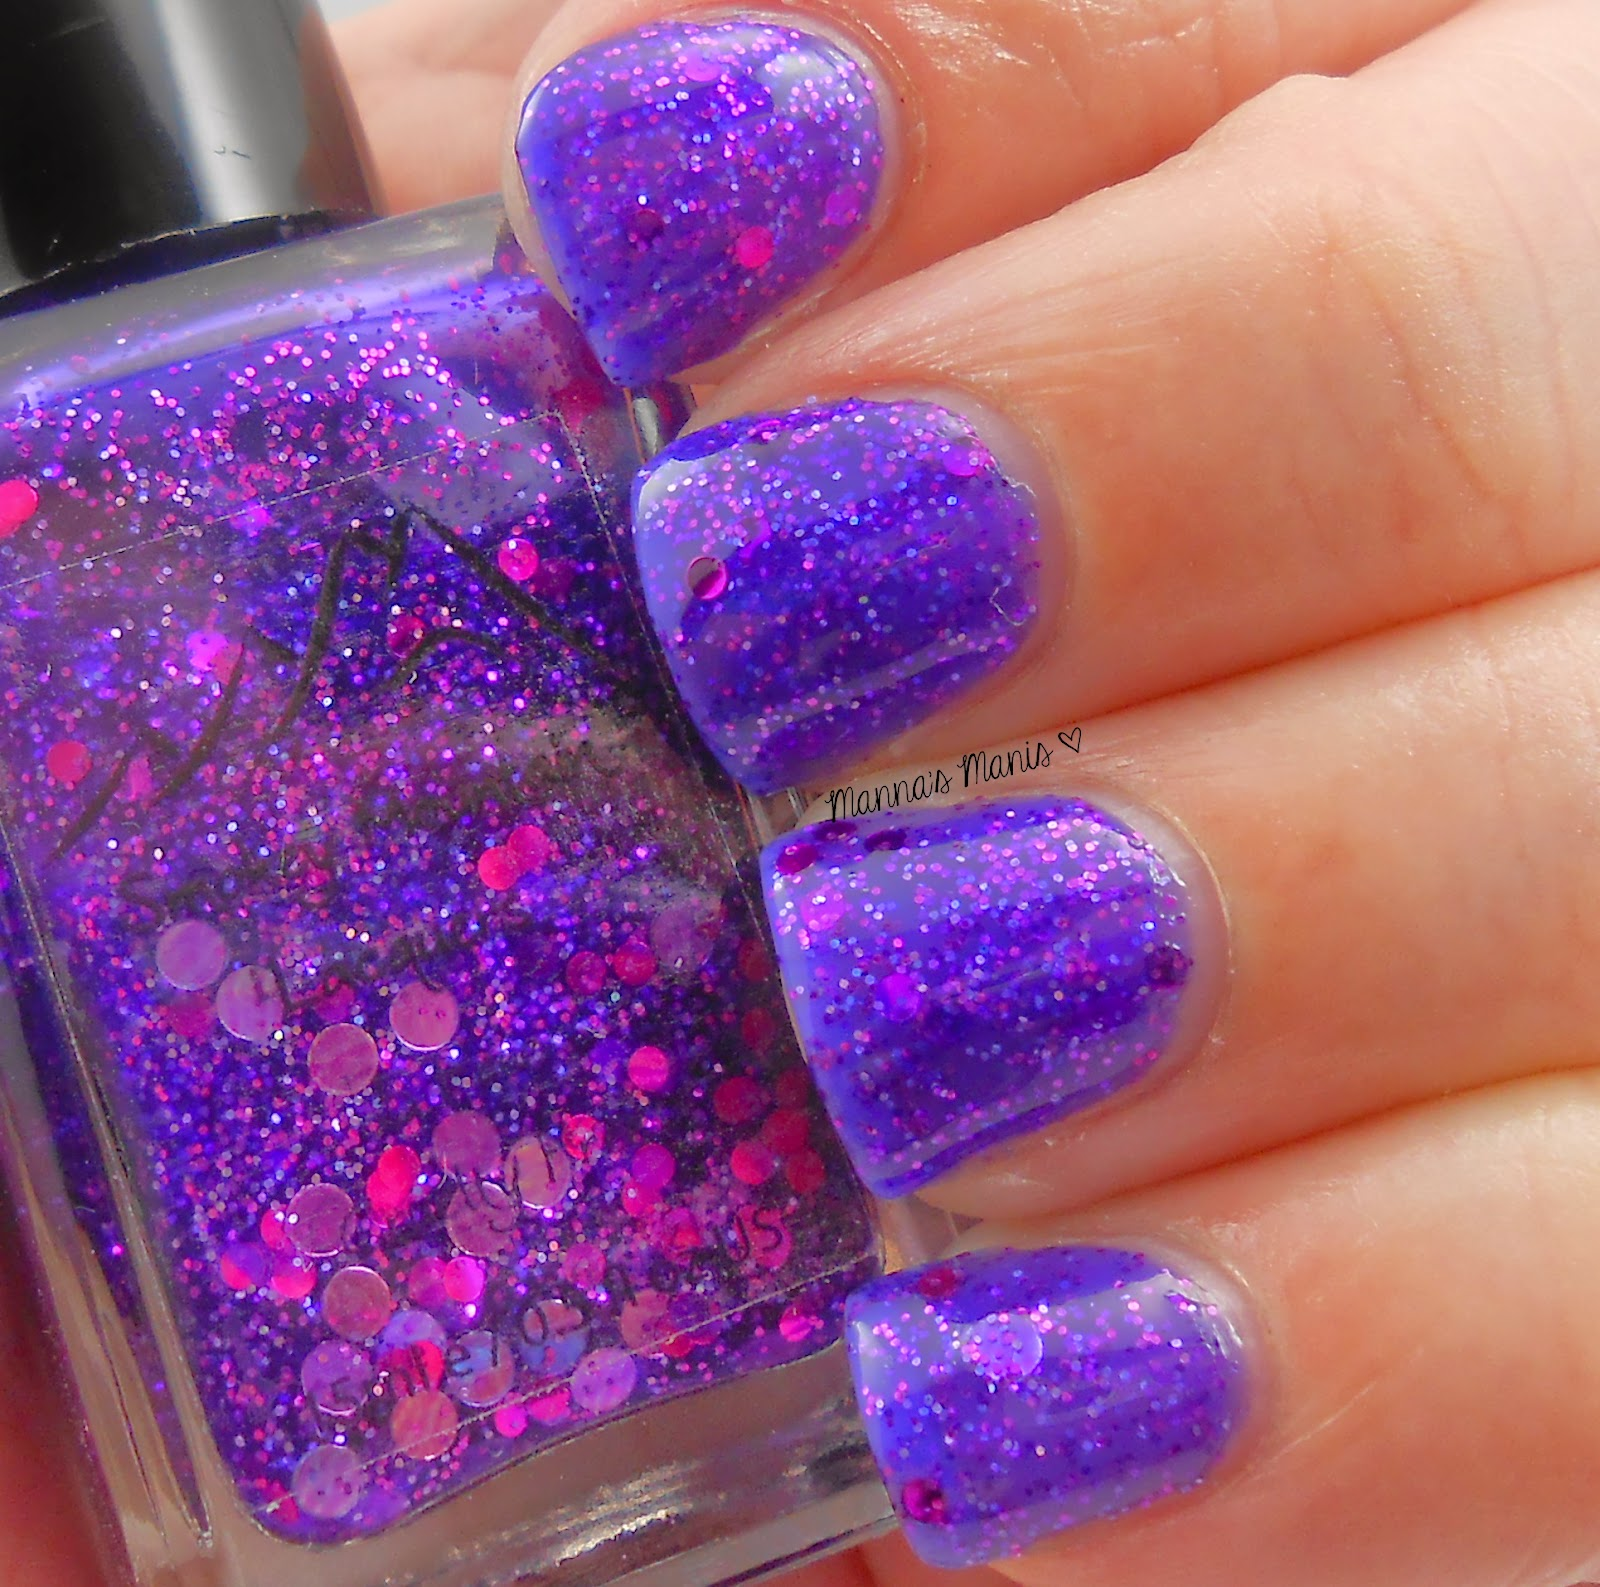 smokey mountain lacquers purple iris, a purple jelly nail polish